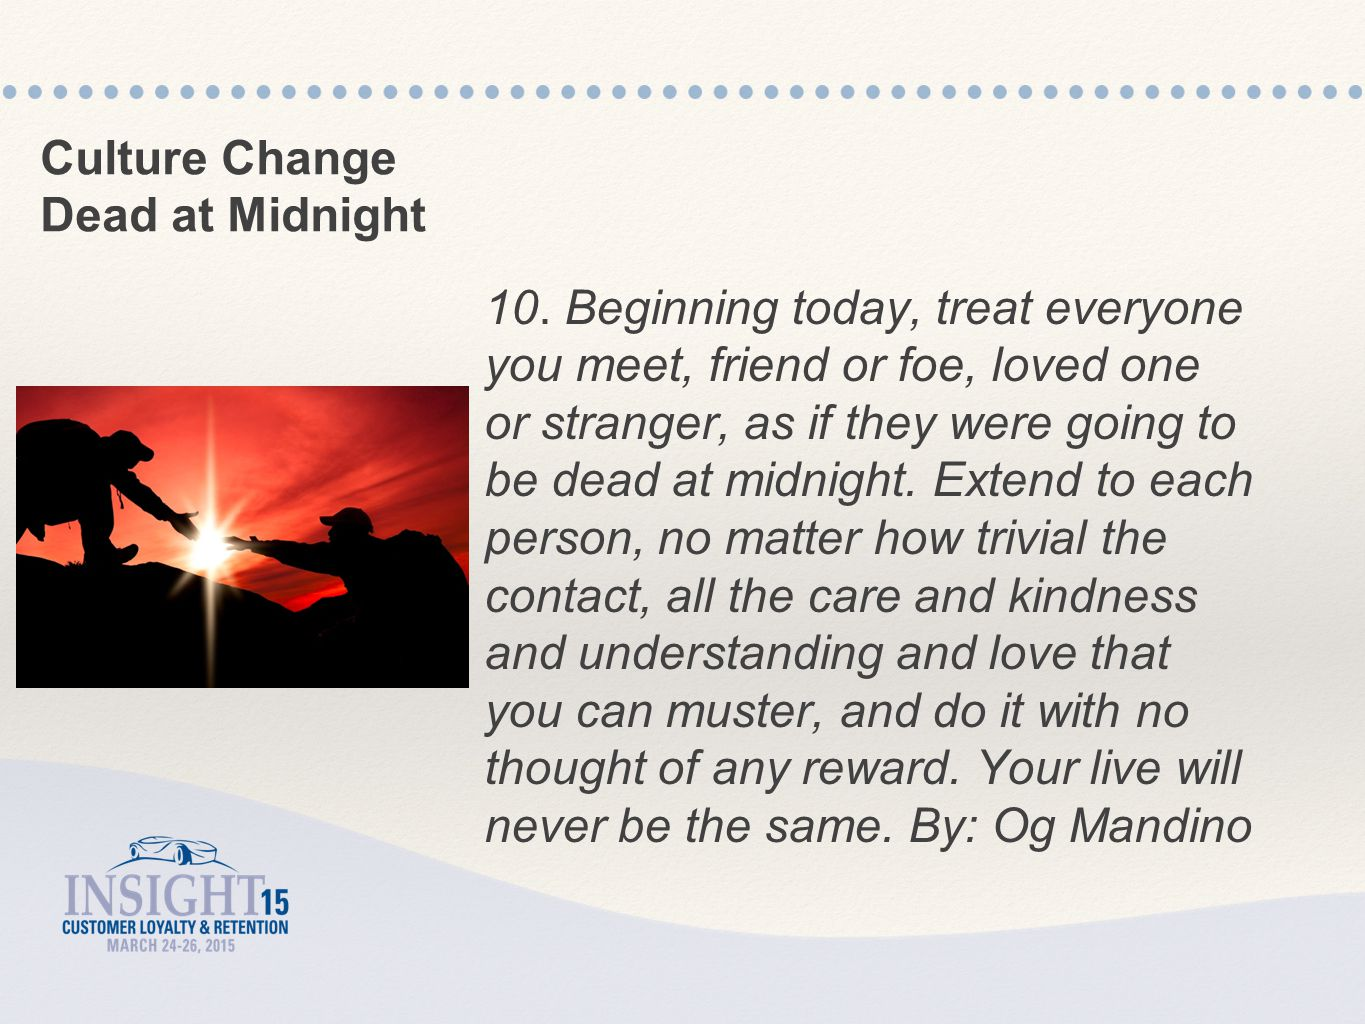 10. Beginning today, treat everyone you meet, friend or foe, loved one or stranger, as if they were going to be dead at midnight. Extend to each perso